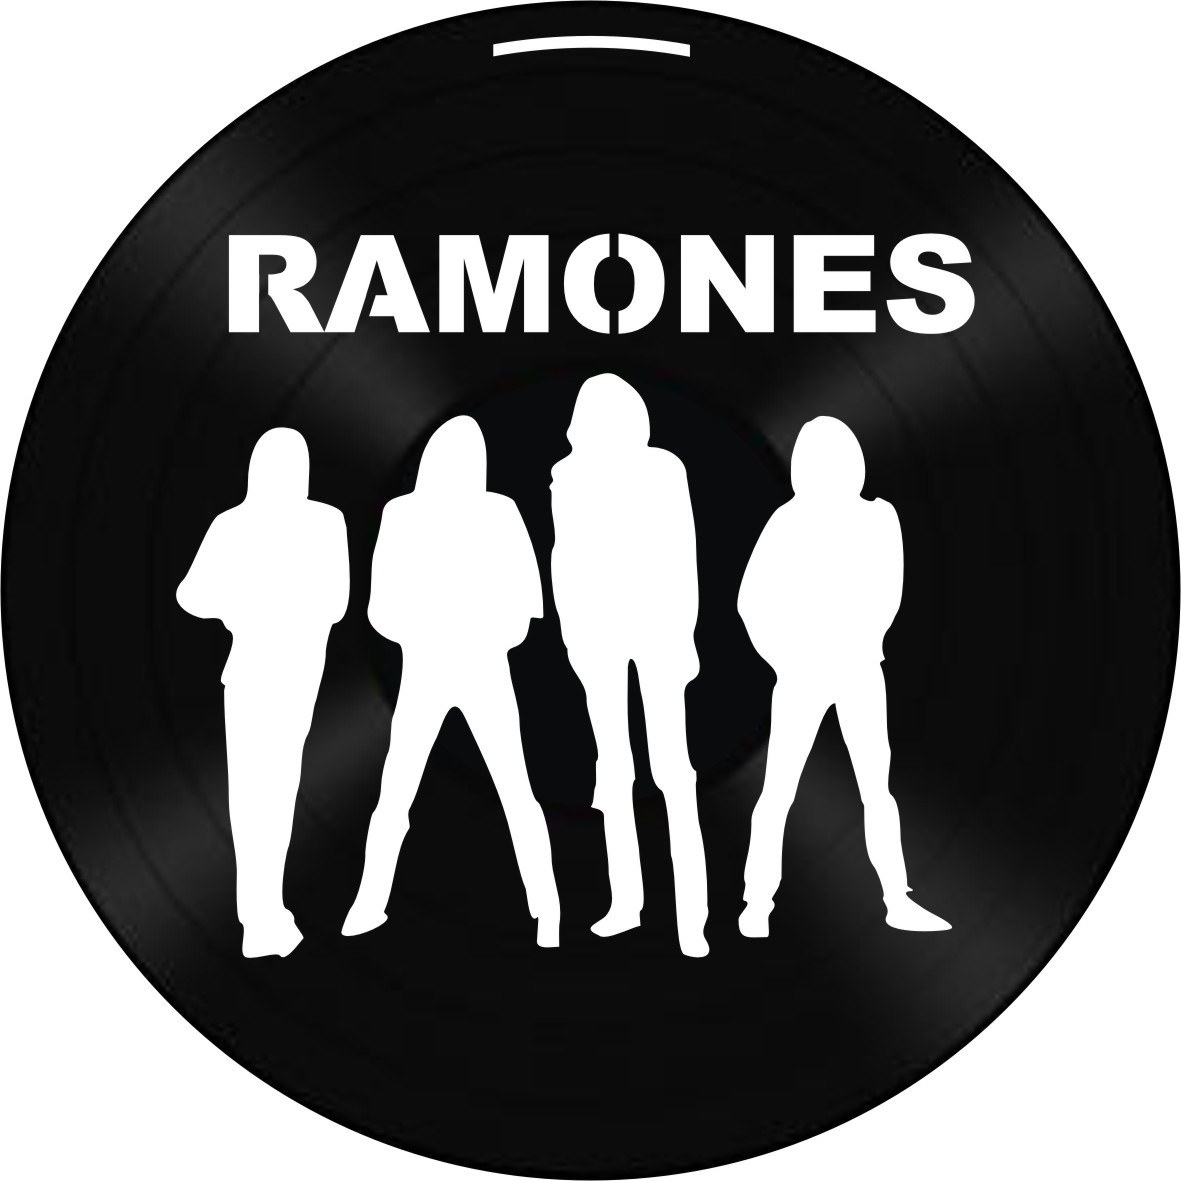 Disco de Vinil Decorativo Ramones